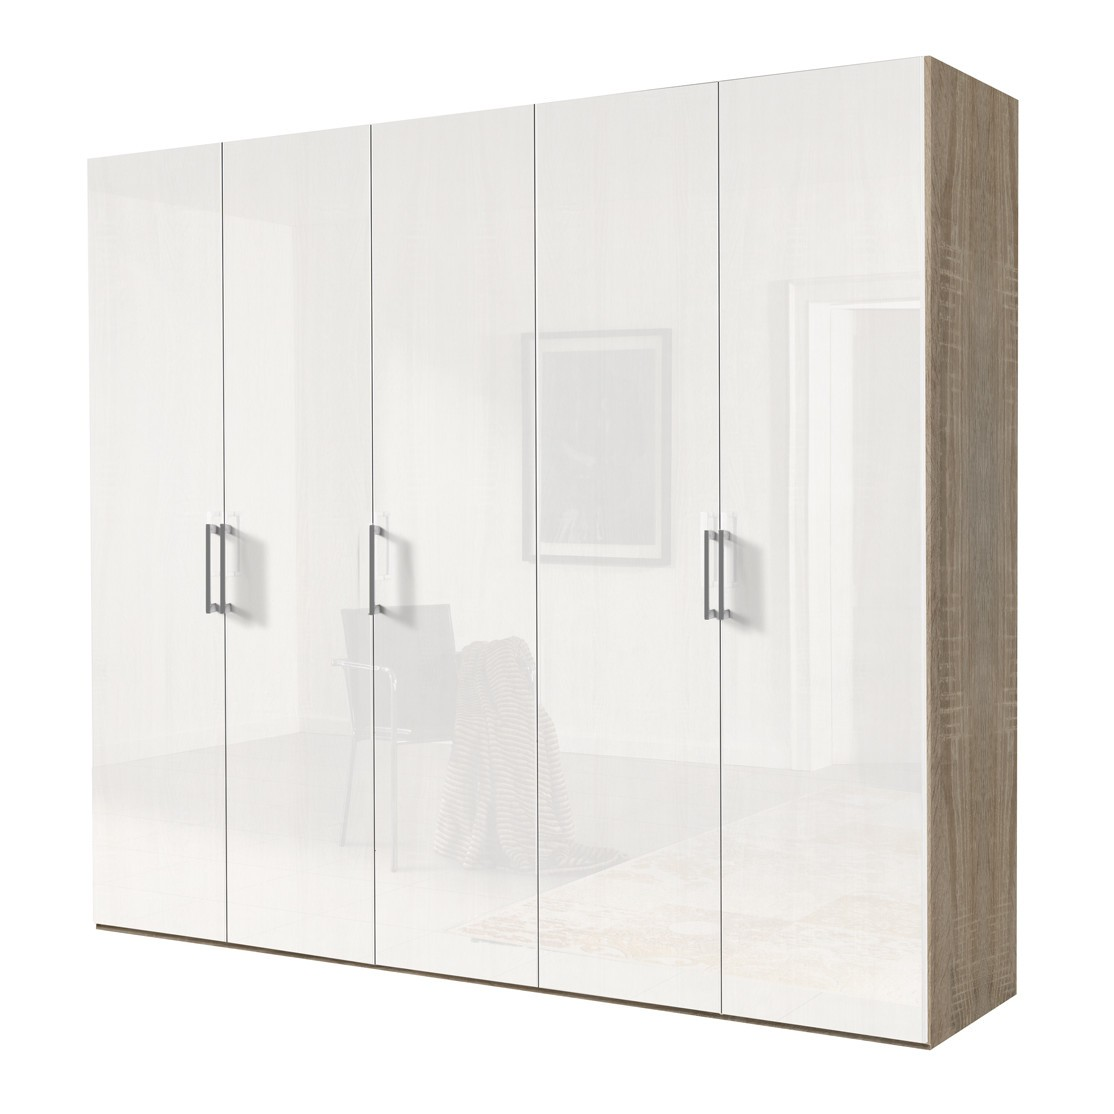 kleiderschrank weiss hochglanz 100 cm. Black Bedroom Furniture Sets. Home Design Ideas